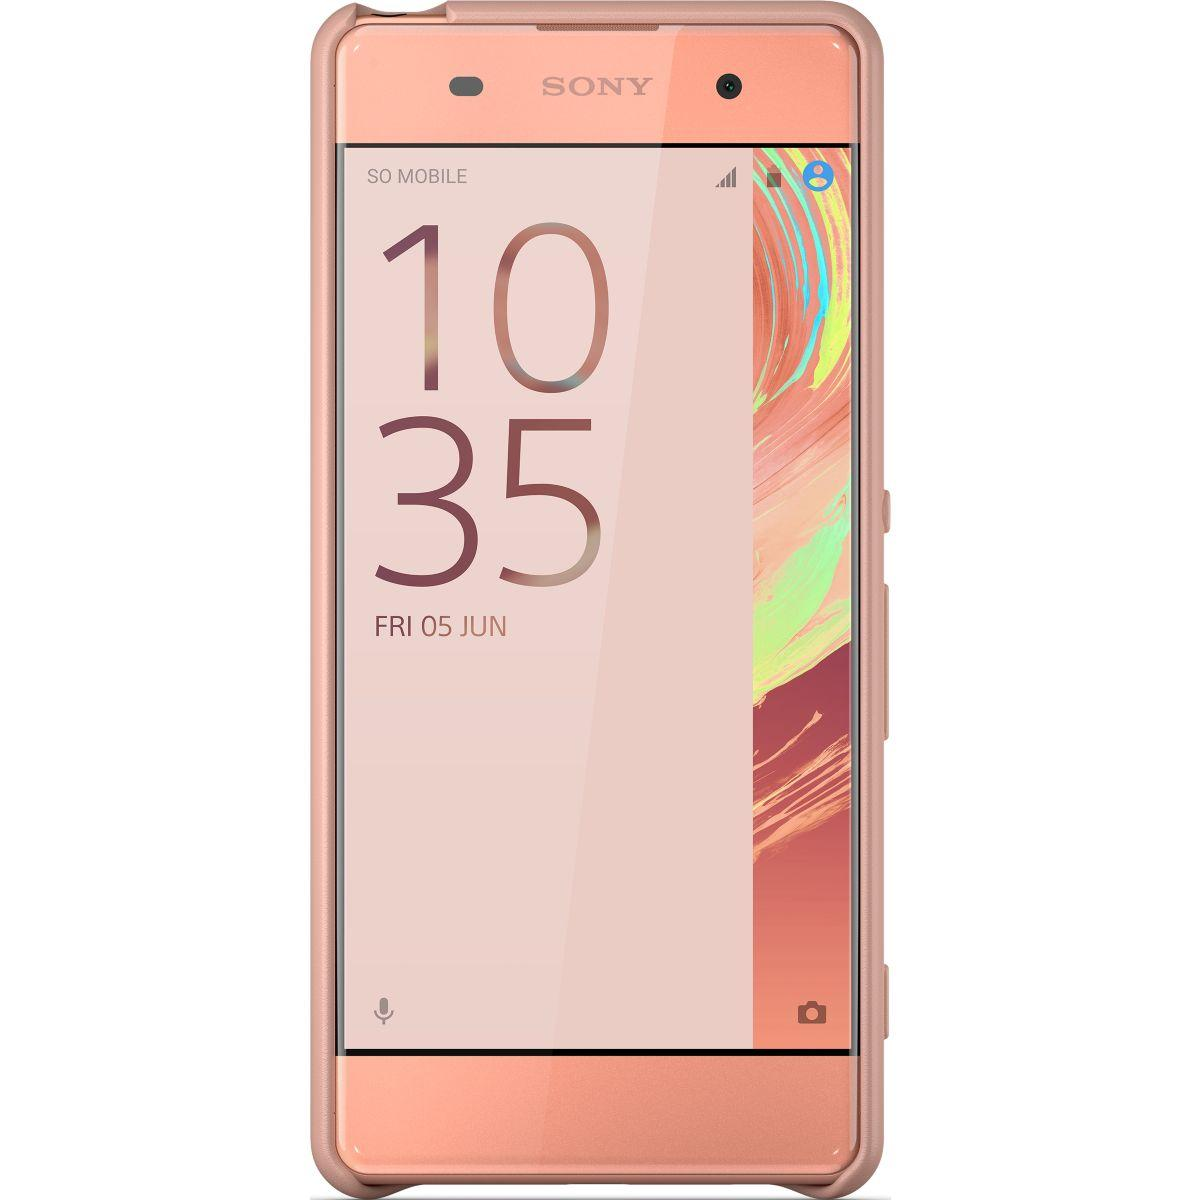 Coque sony xperia xa rose - soldes et bons plans